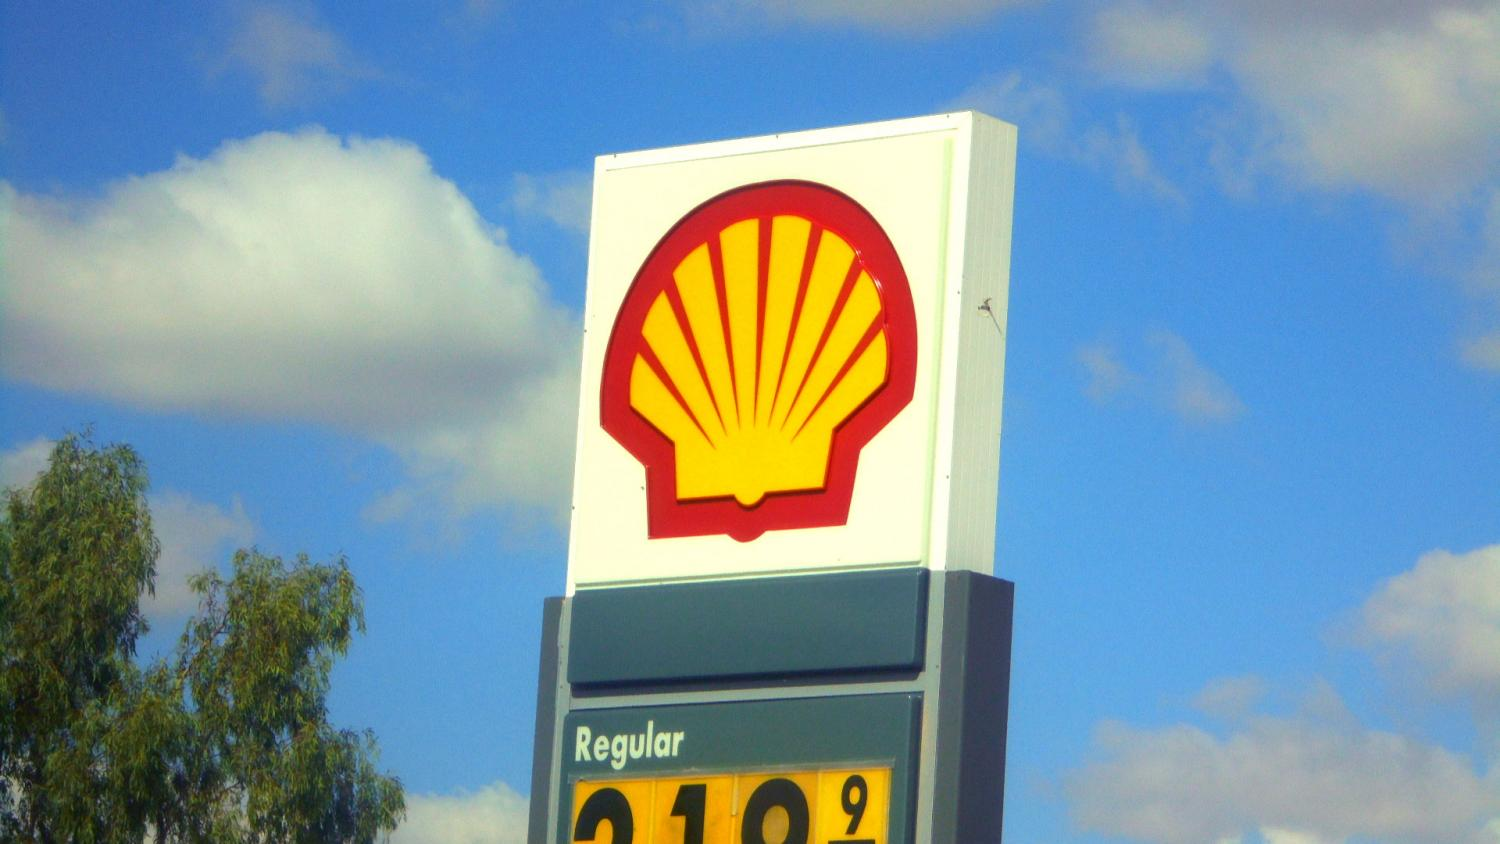 Sign at gas station with Shell logo